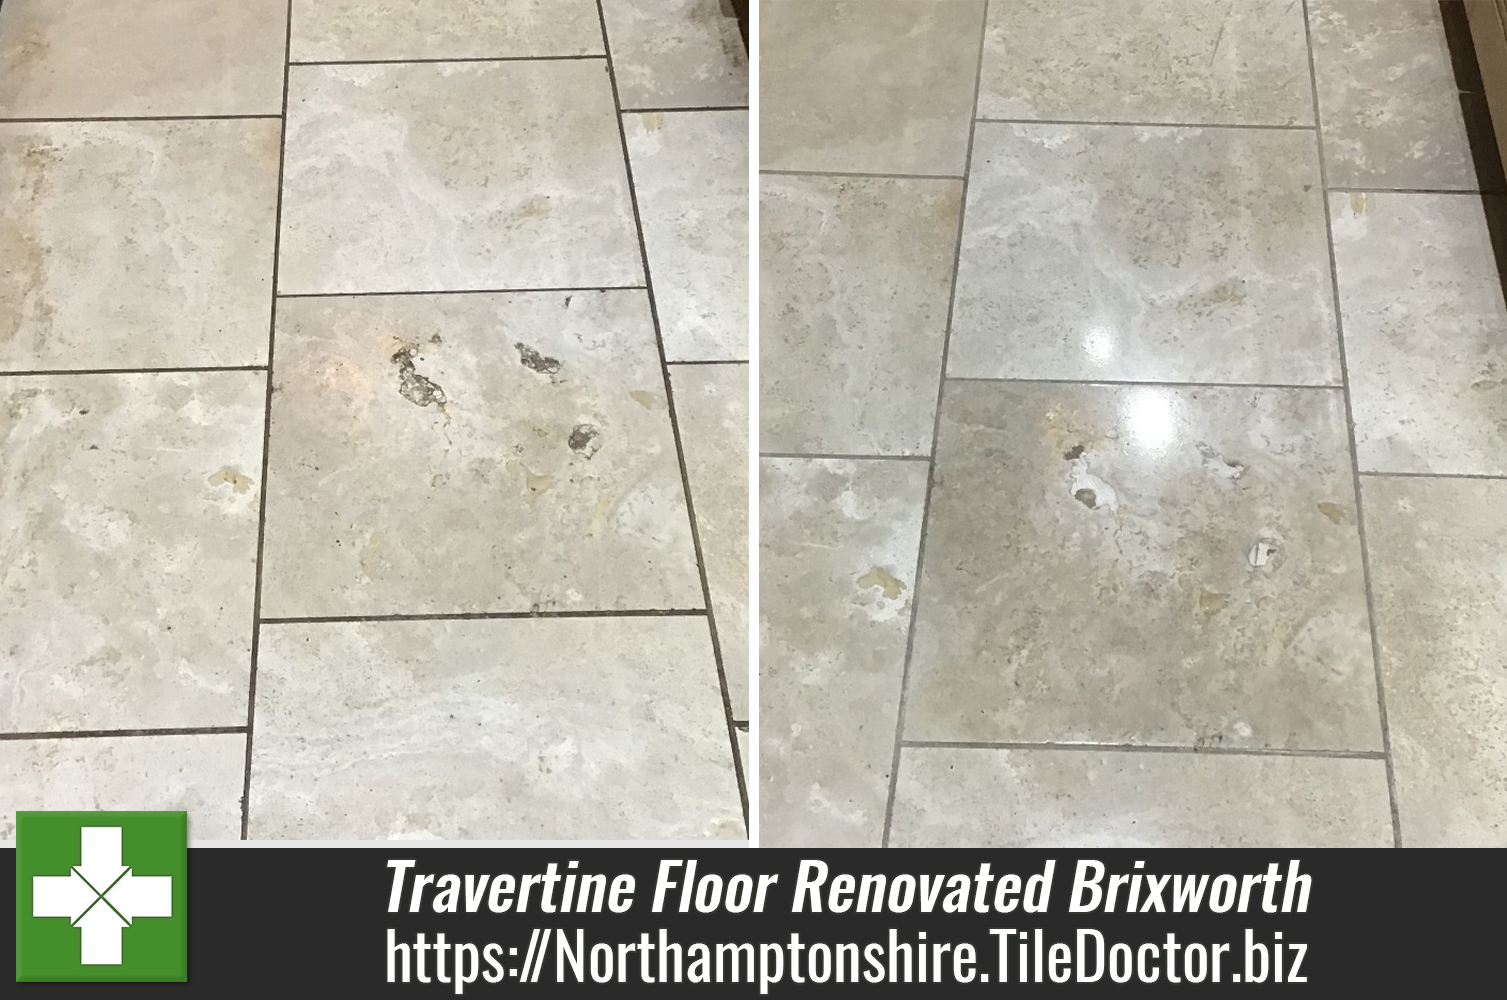 Travertine Floor Tiles Repaired and Polished in Old Near Brixworth